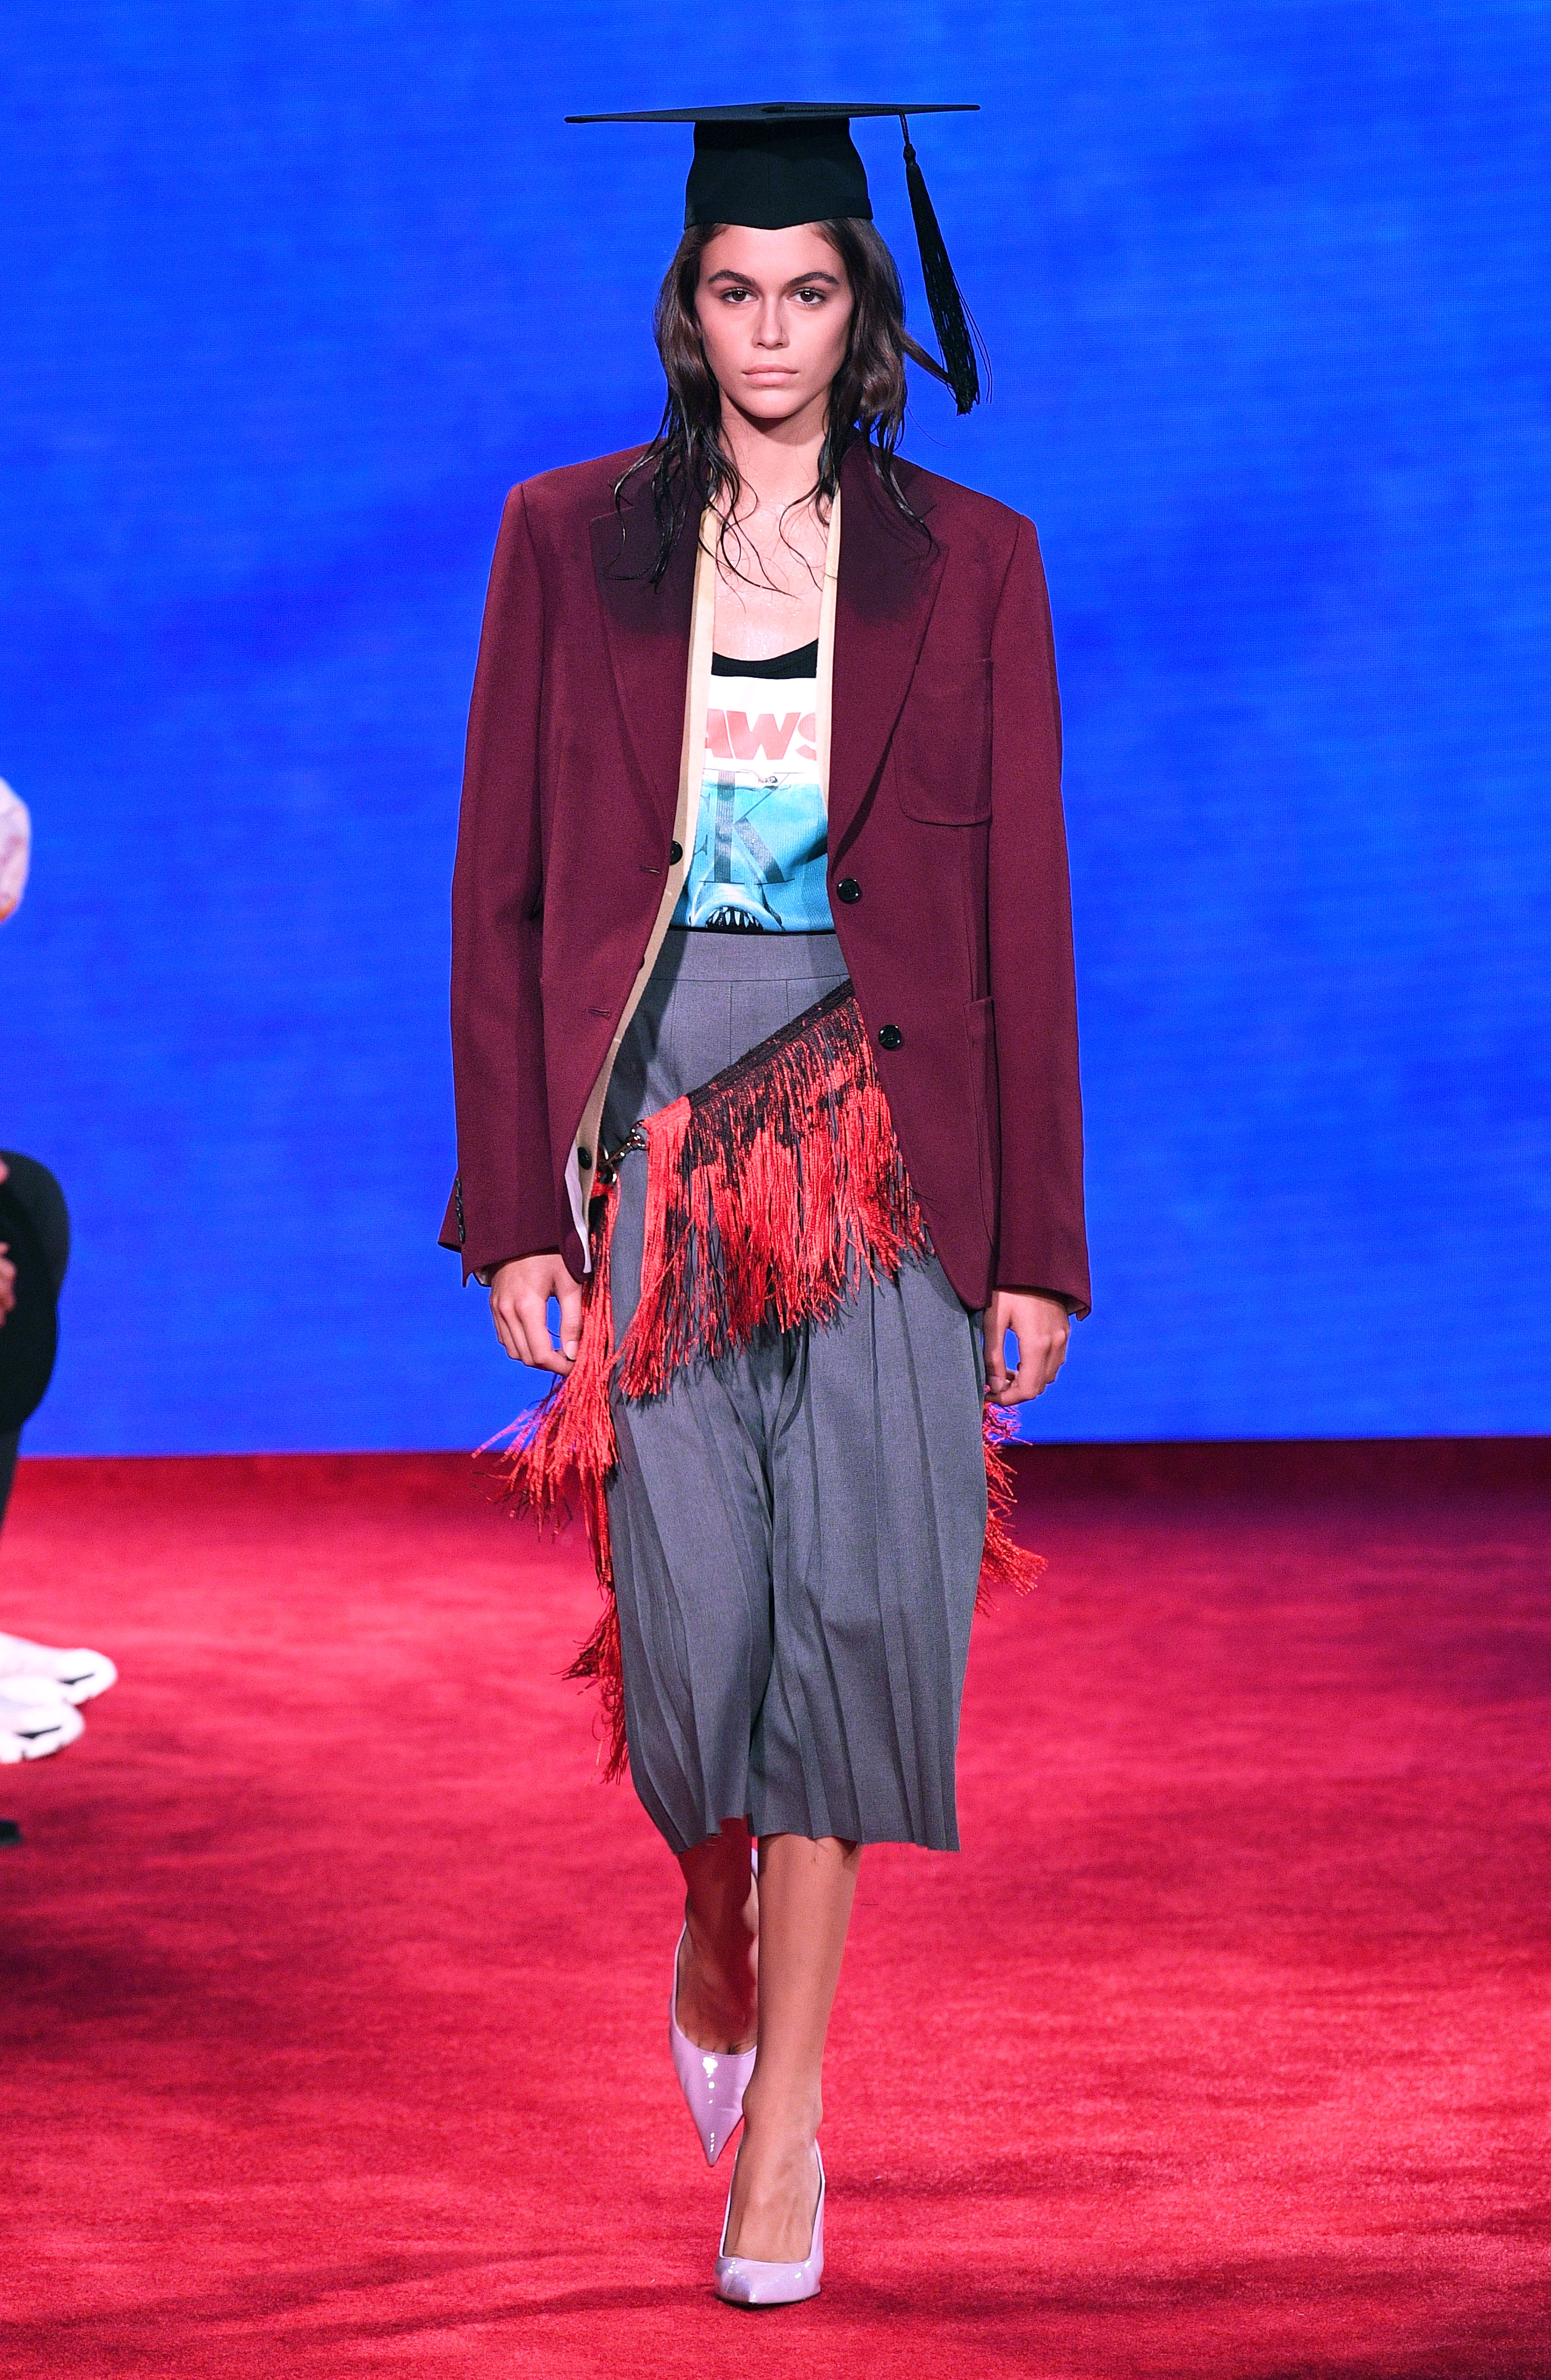 Kaia Gerber - Gerber walked the Calvin Klein show during New York Fashion Week in a Jaws graphic tee underneath a burgundy jacket, a pleated skirt with a red fringe belt and a black graduation cap.